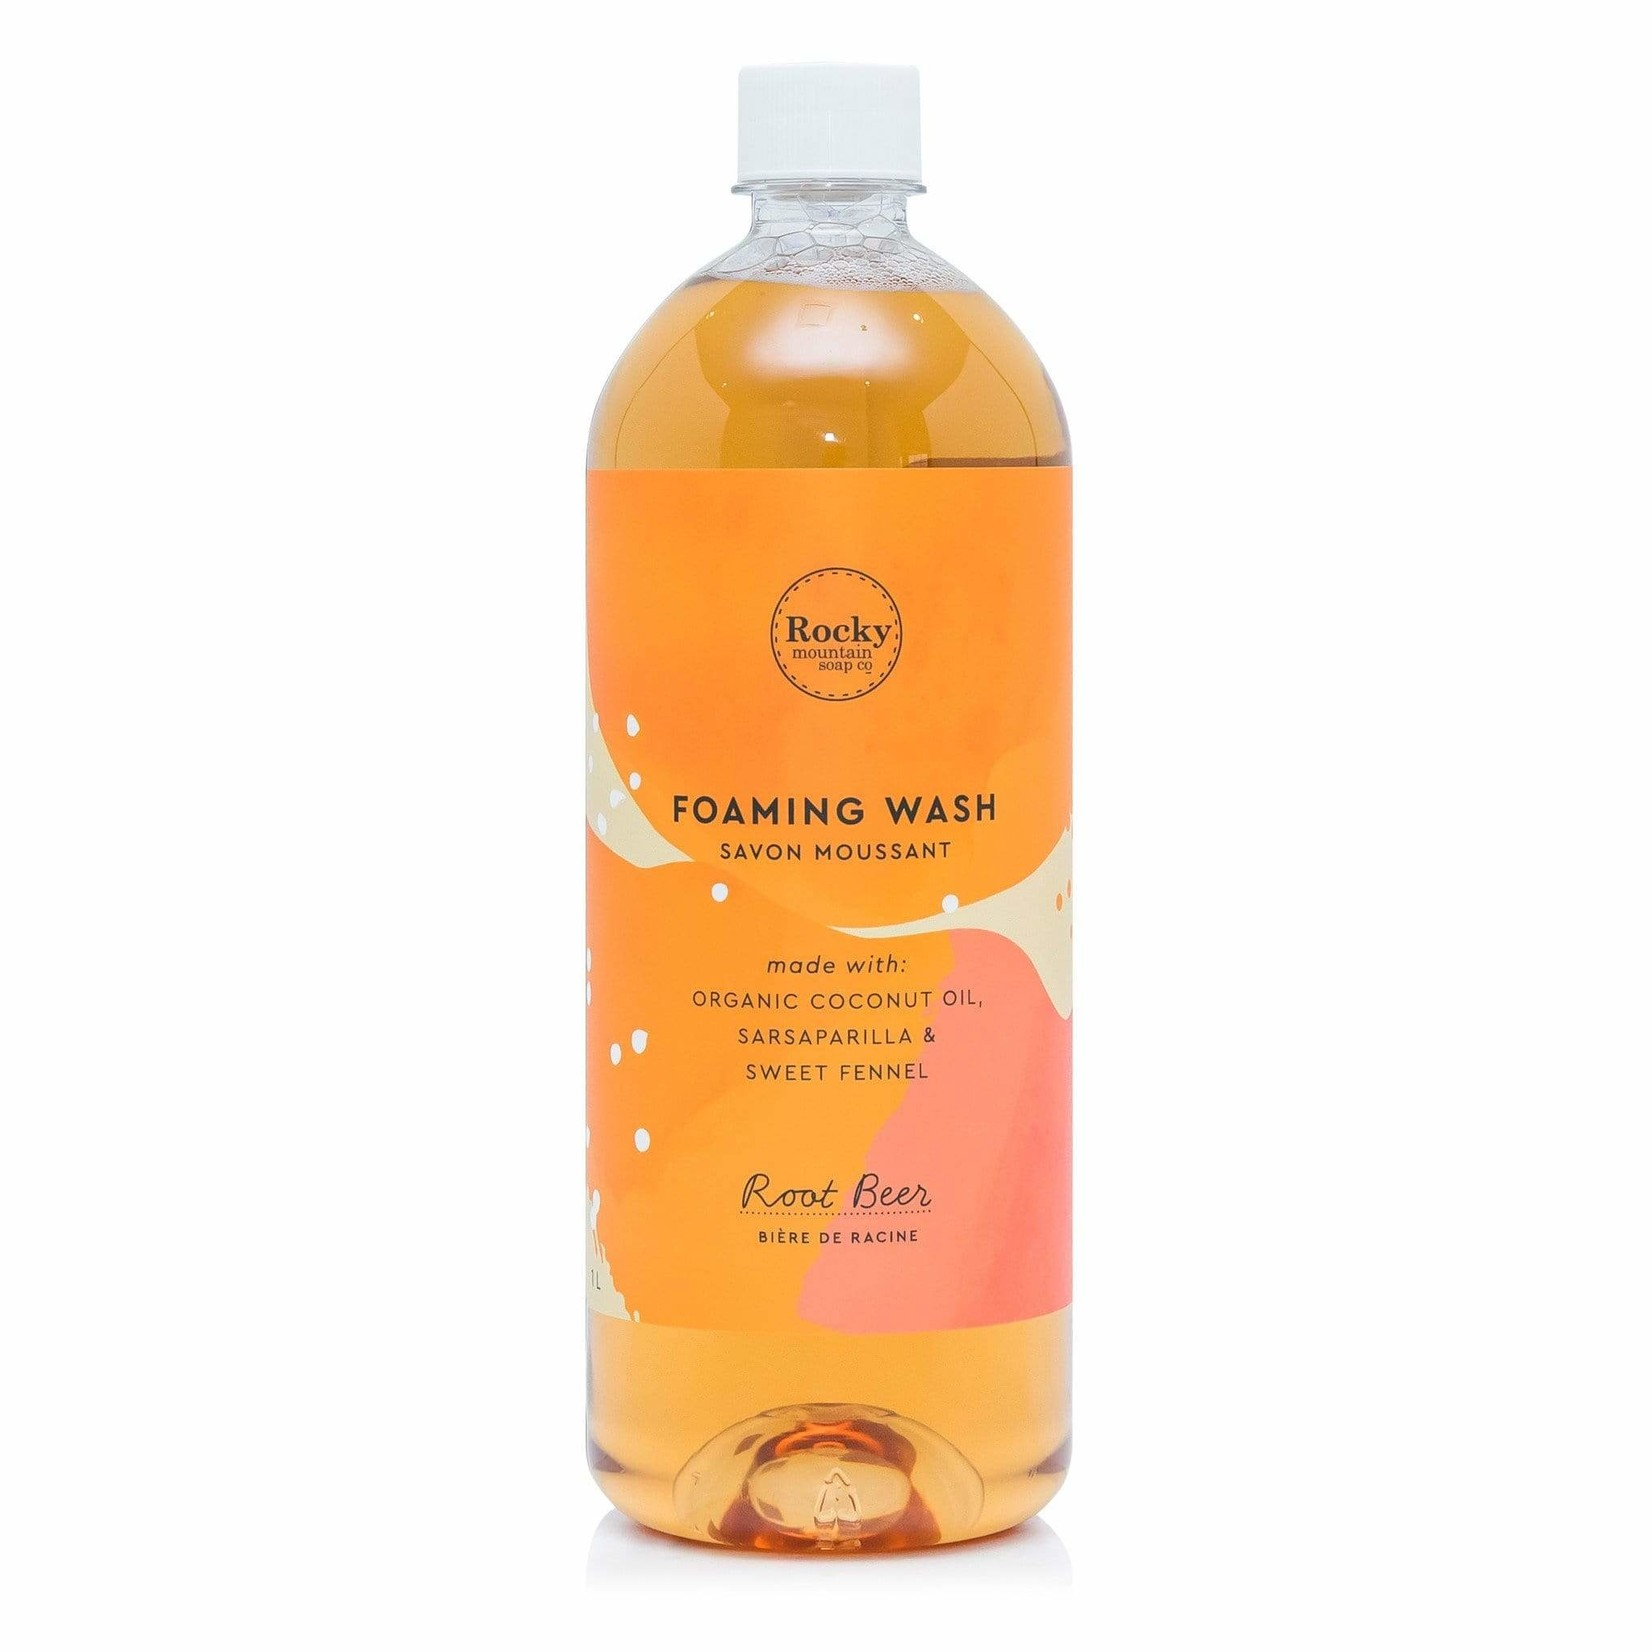 ROCKY MOUNTAIN SOAP CO. FOAMING WASH - ROOT BEER